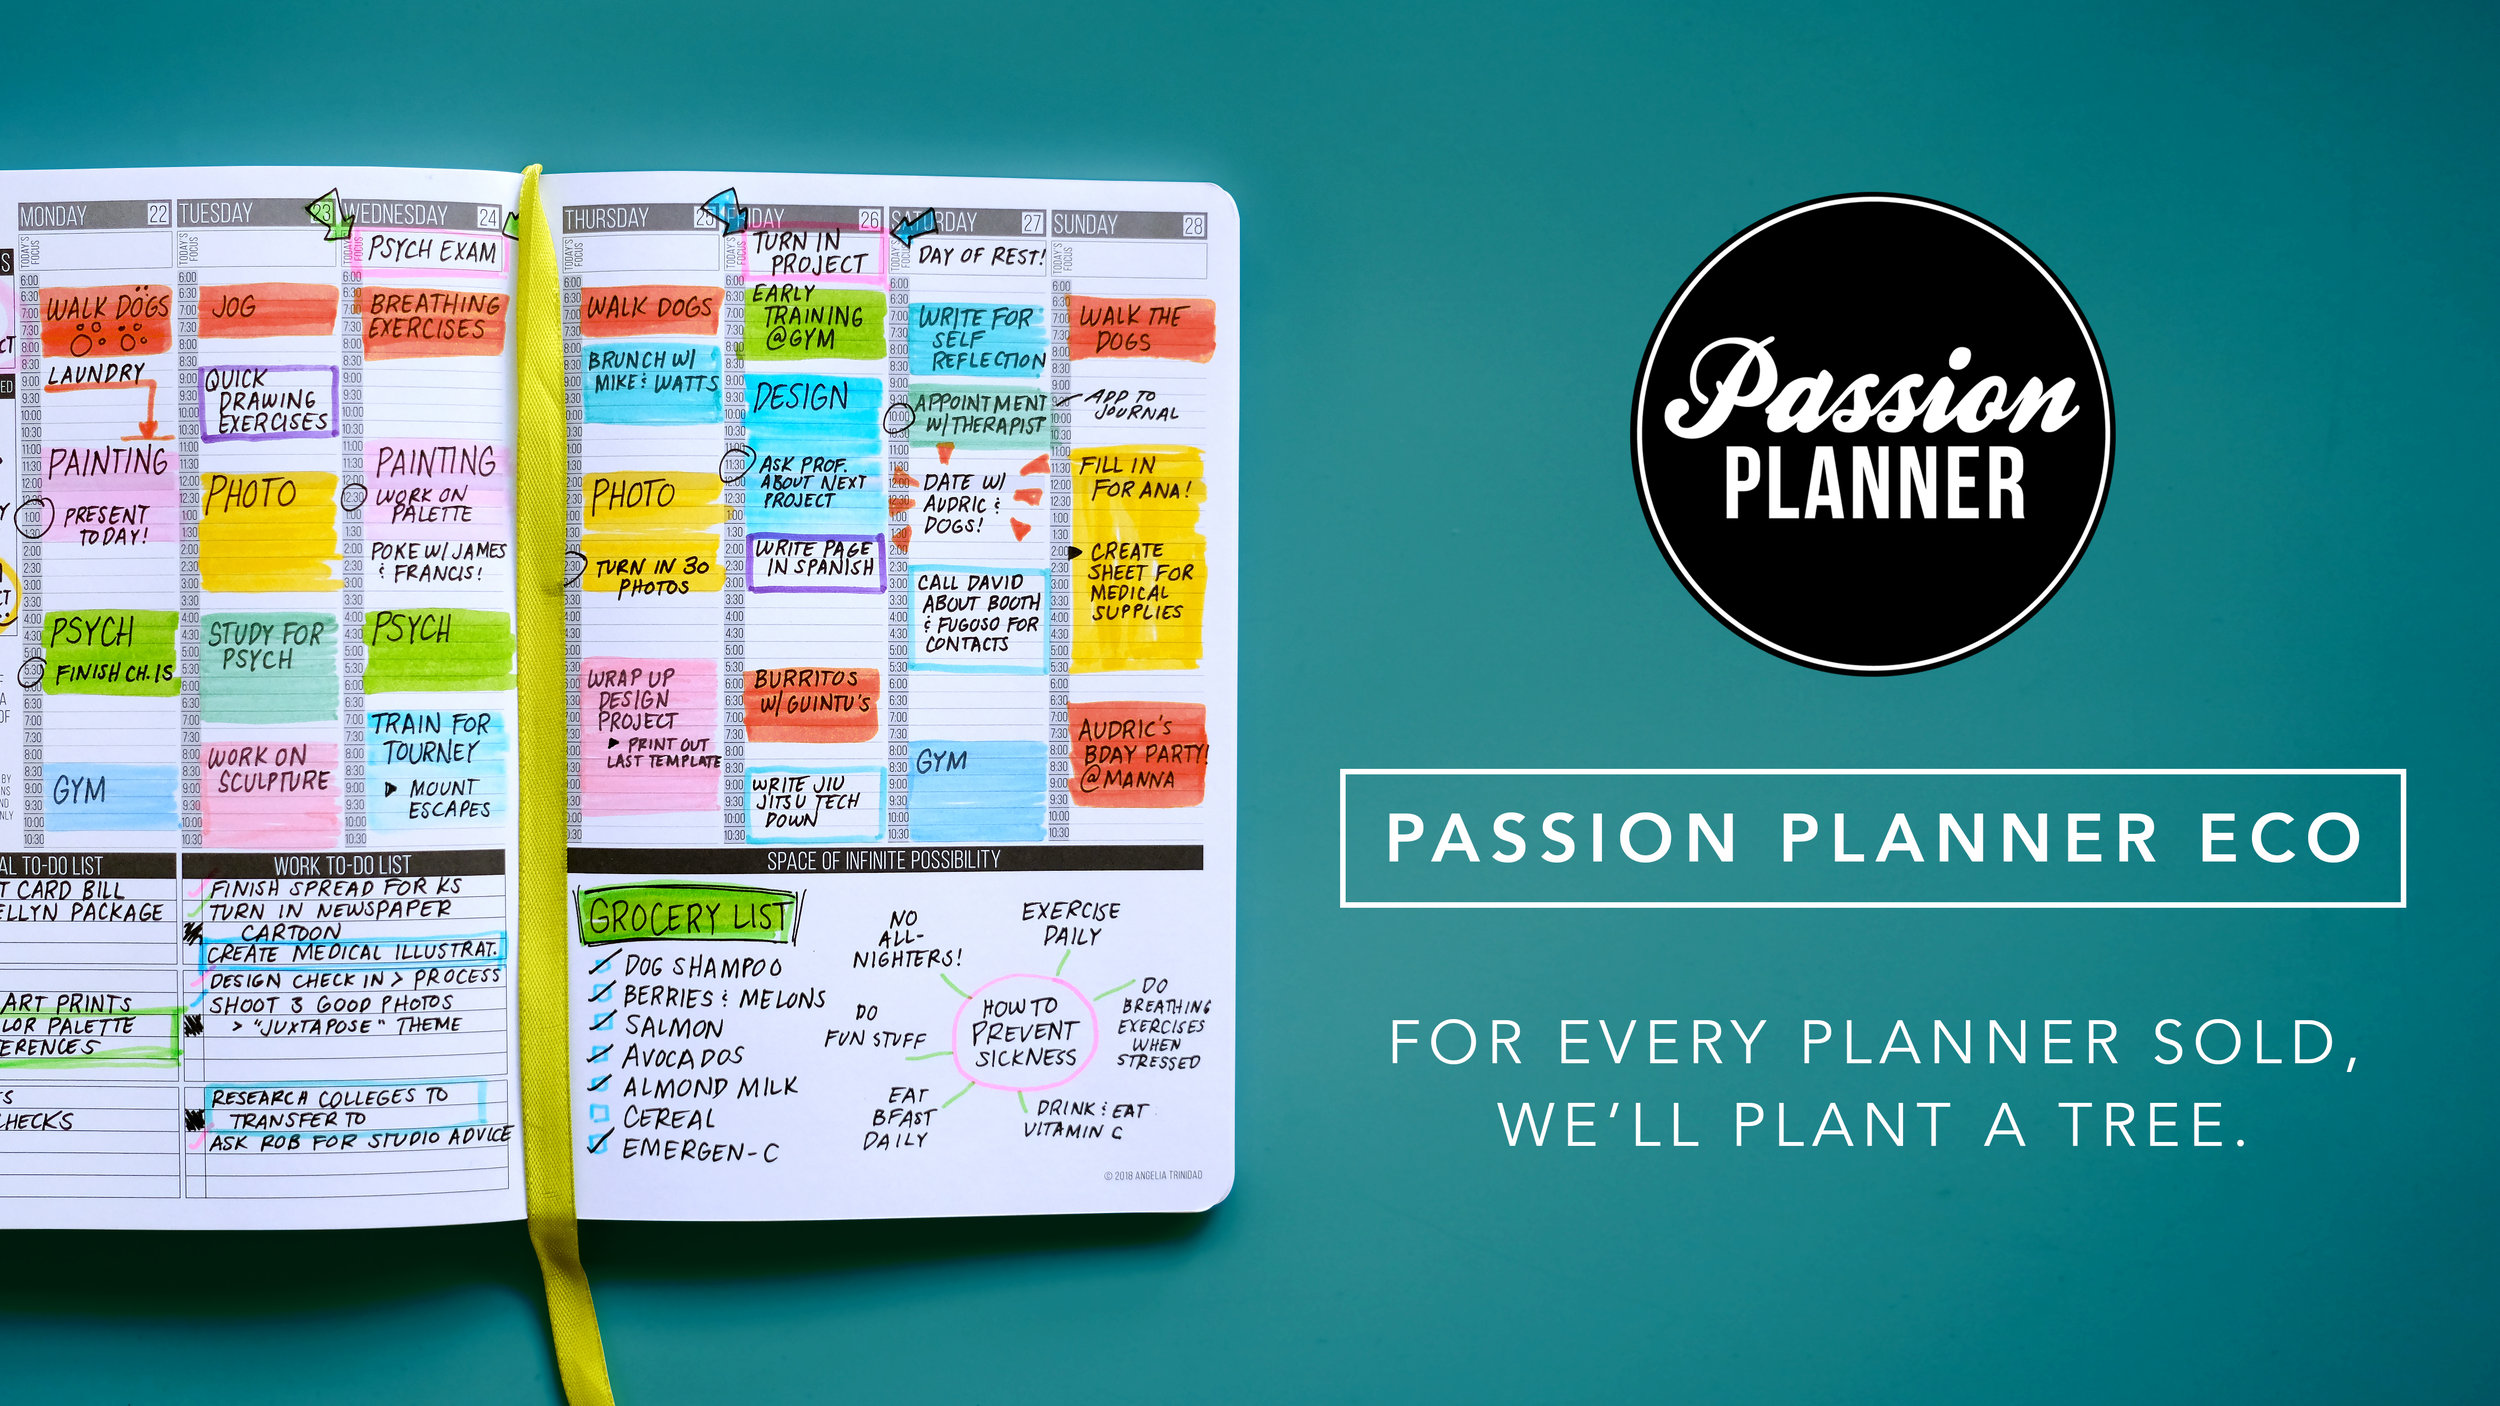 Passion Planner Eco